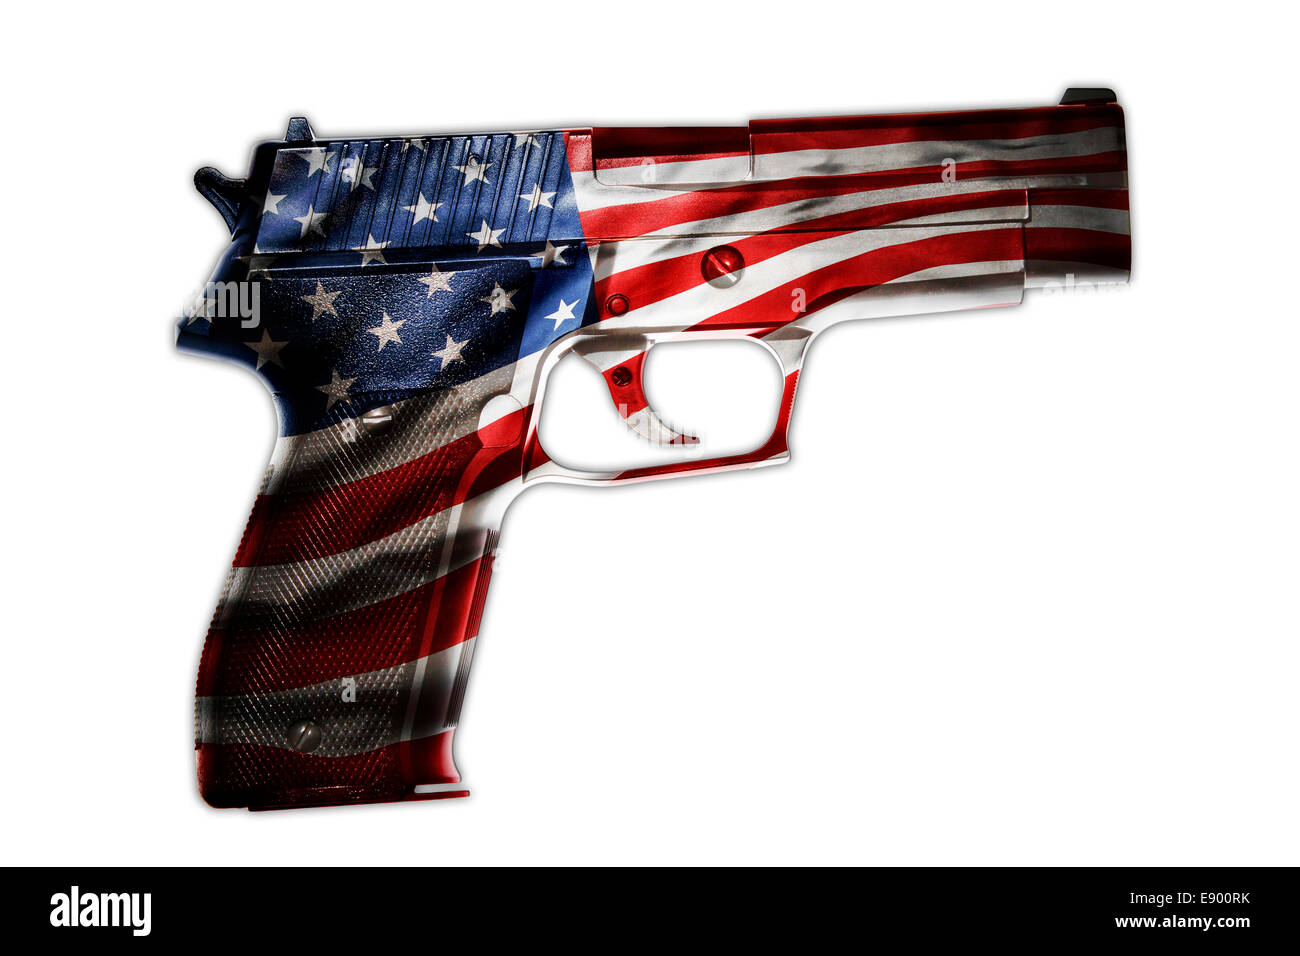 Handgun and American flag composite - Stock Image